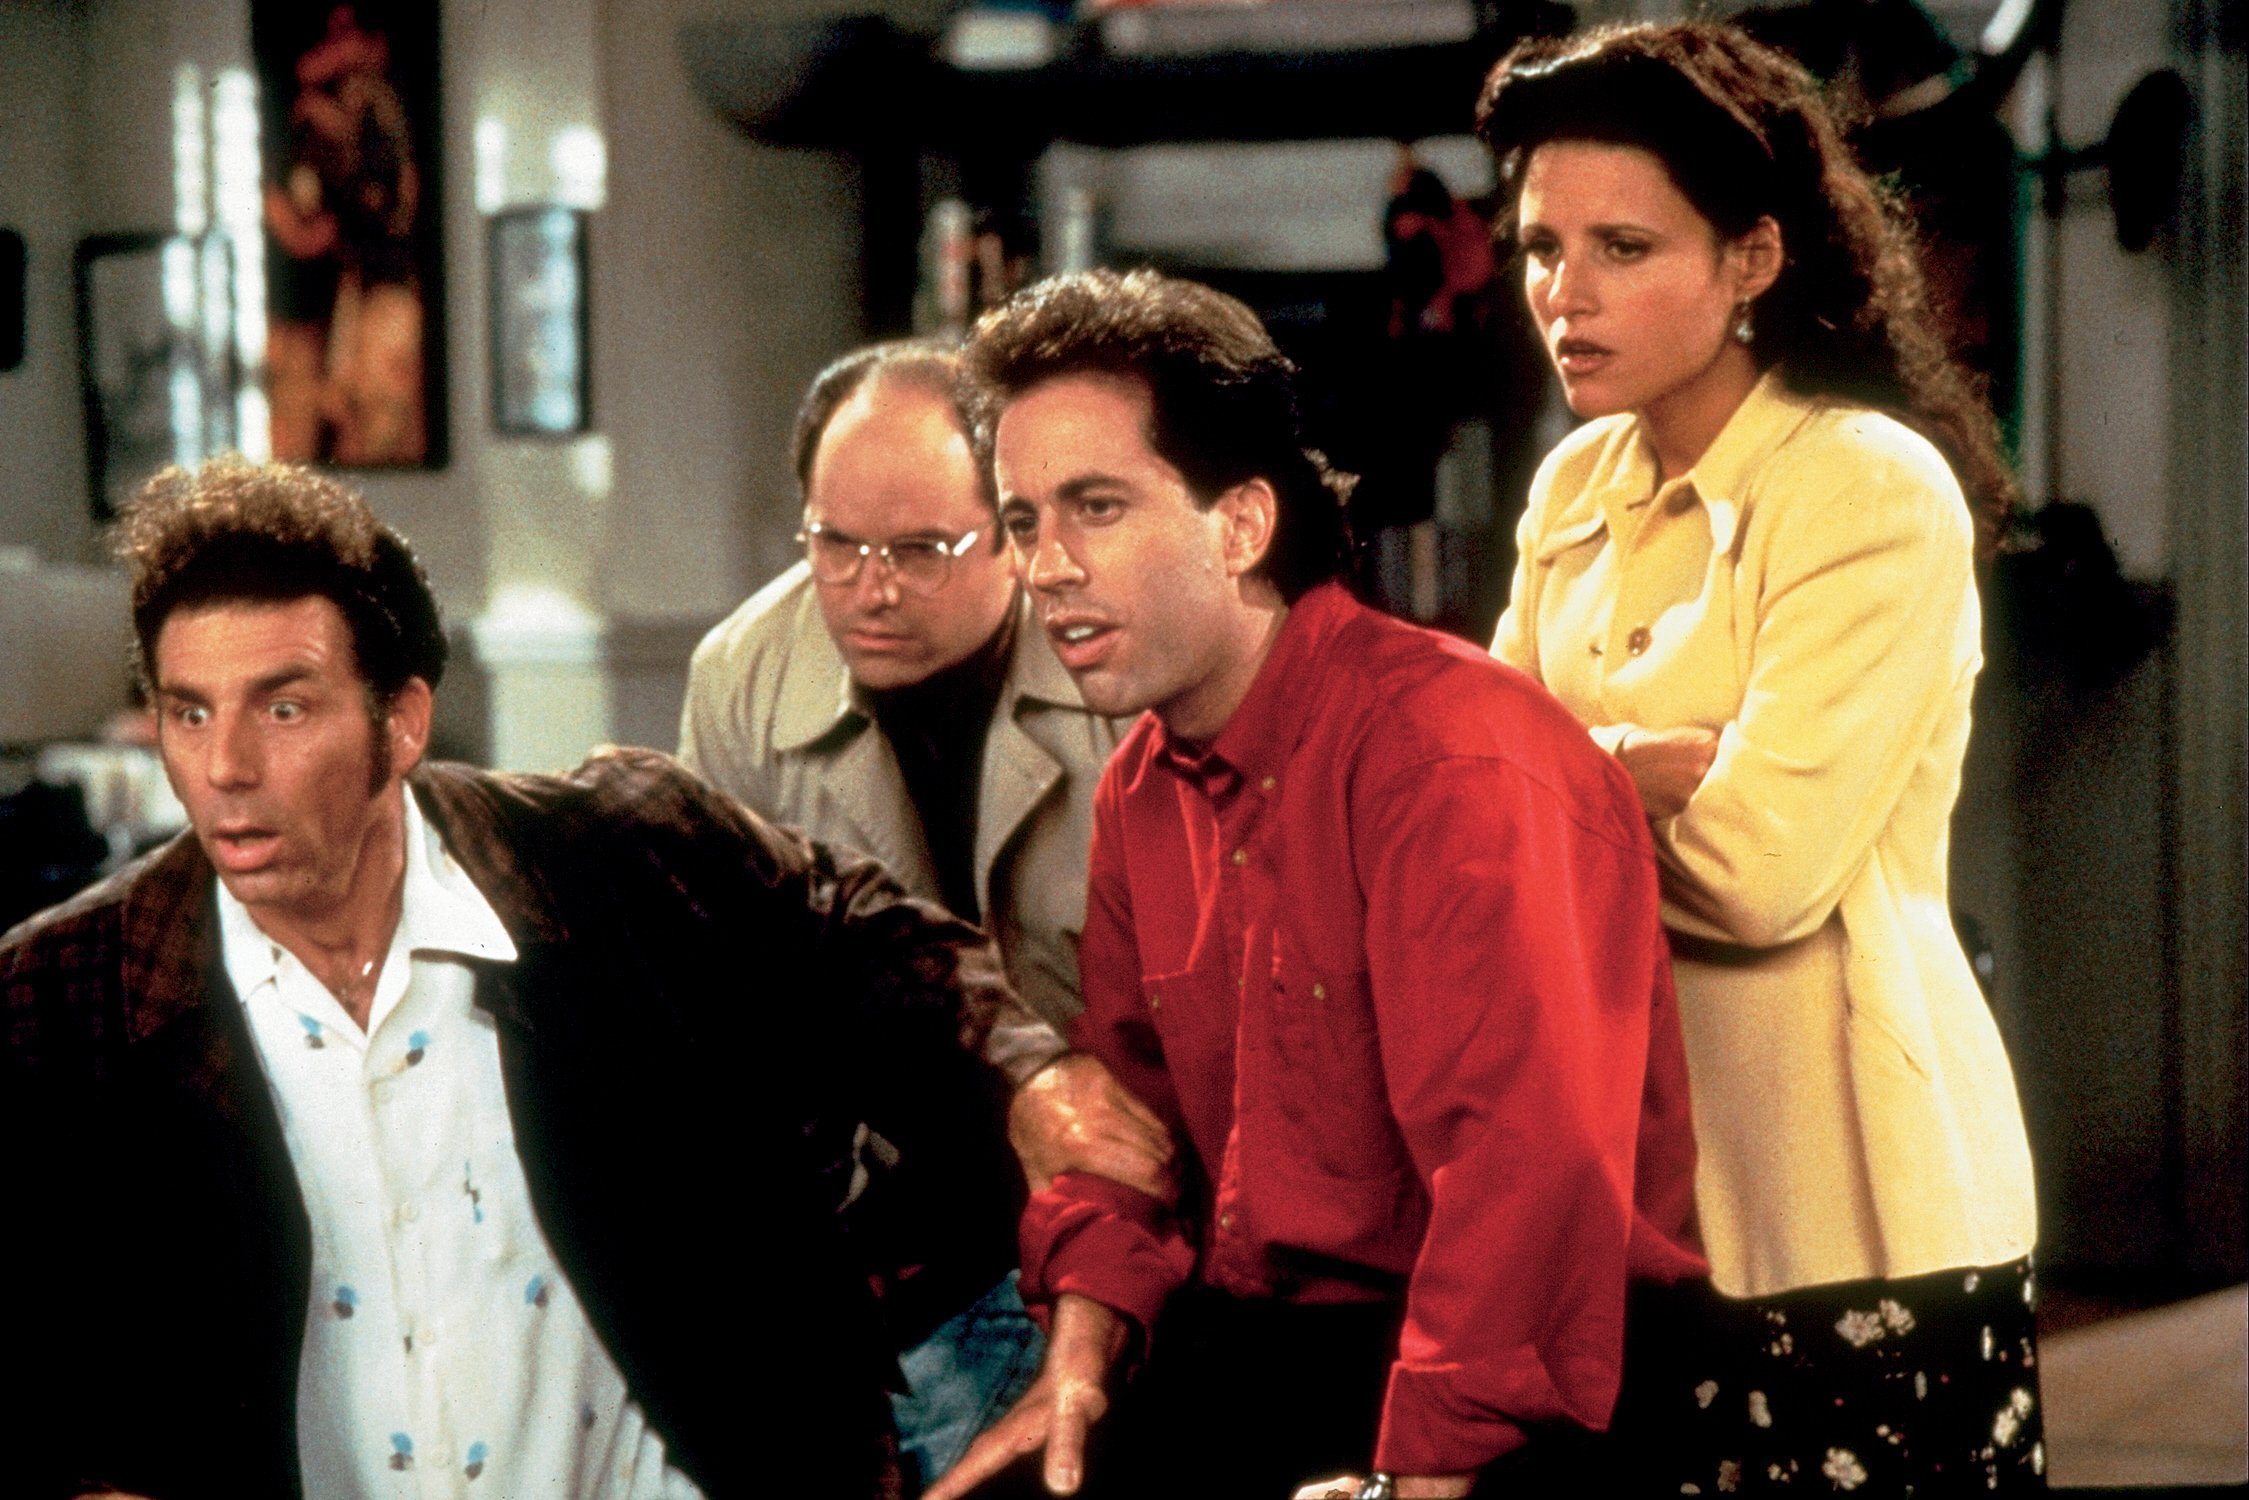 'Seinfeld' moving from TBS to Viacom, not that there's anything wrong with that